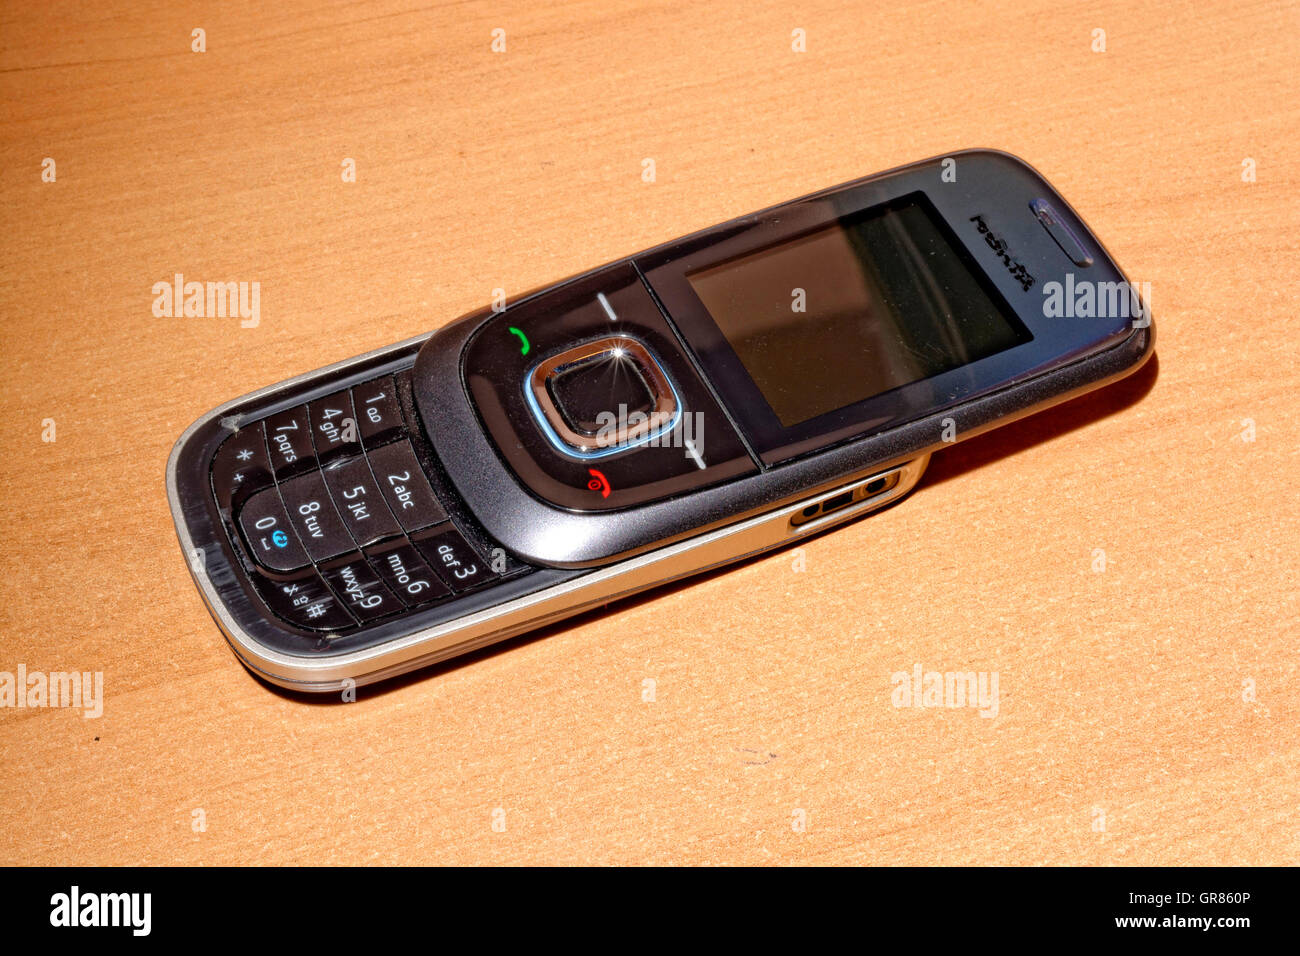 Used Old Cell Phone, Cellphone - Stock Image